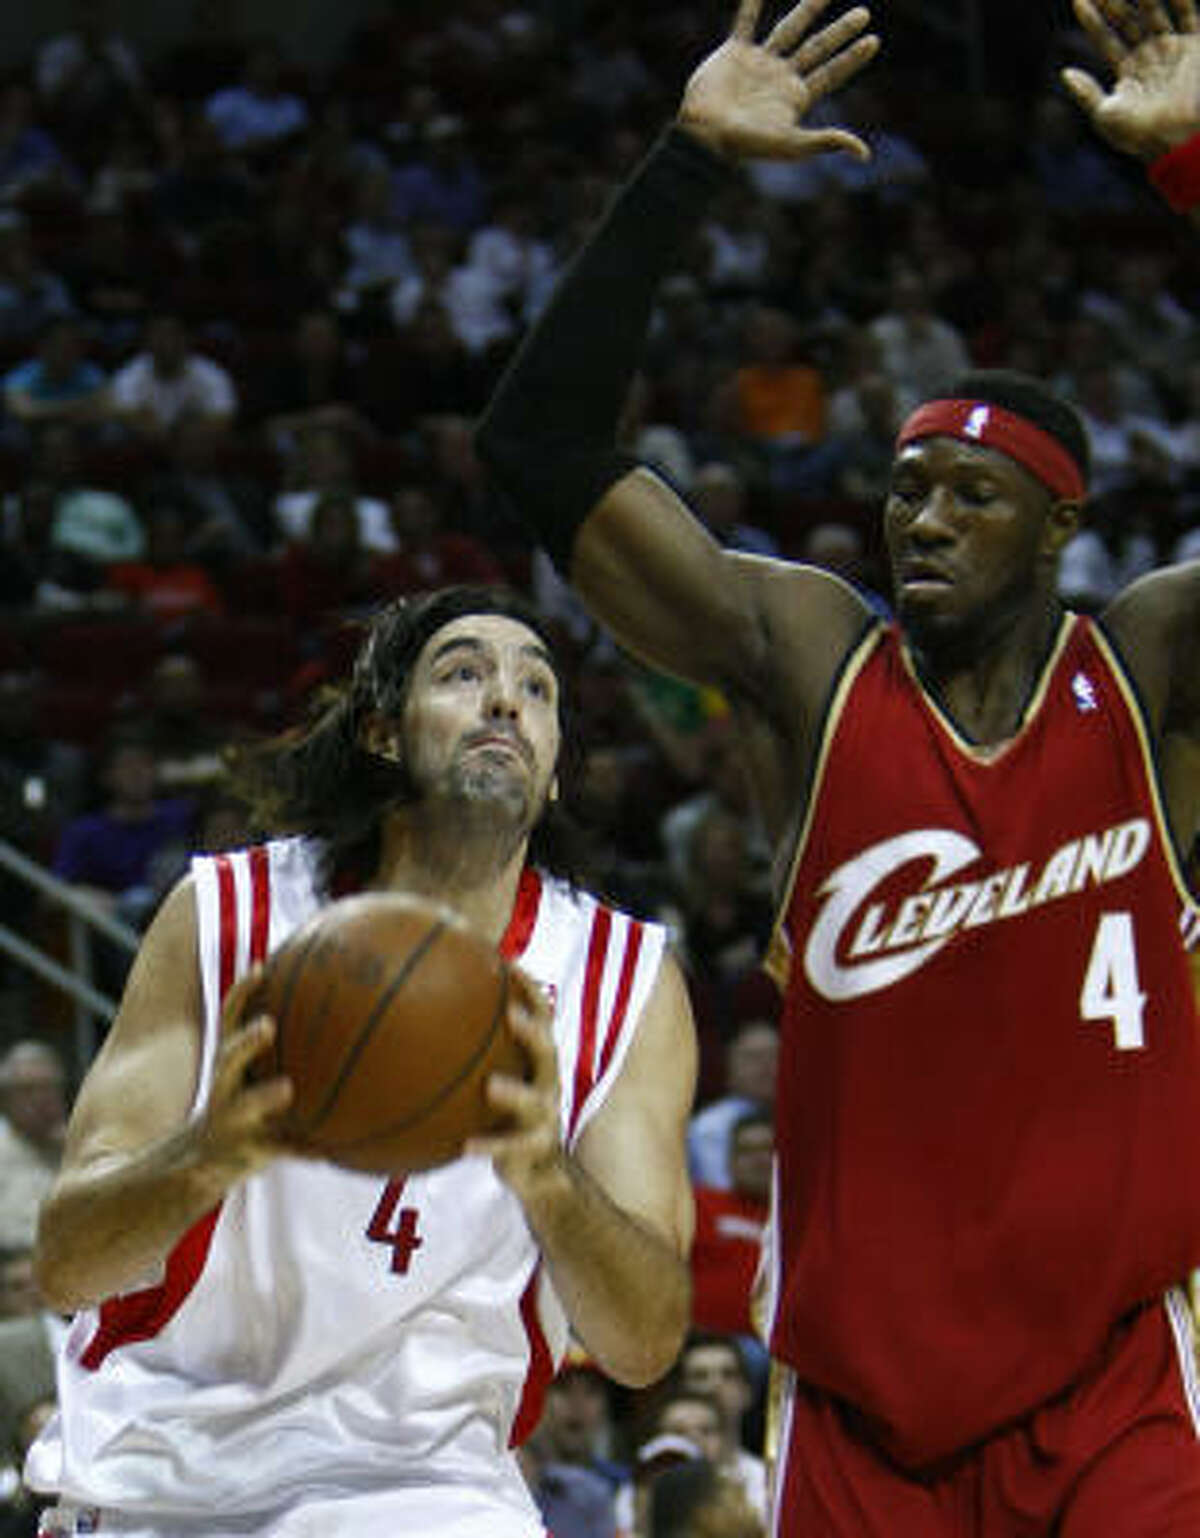 Luis Scola (4) drives to the basket against Cavaliers center Ben Wallace in the first quarter.